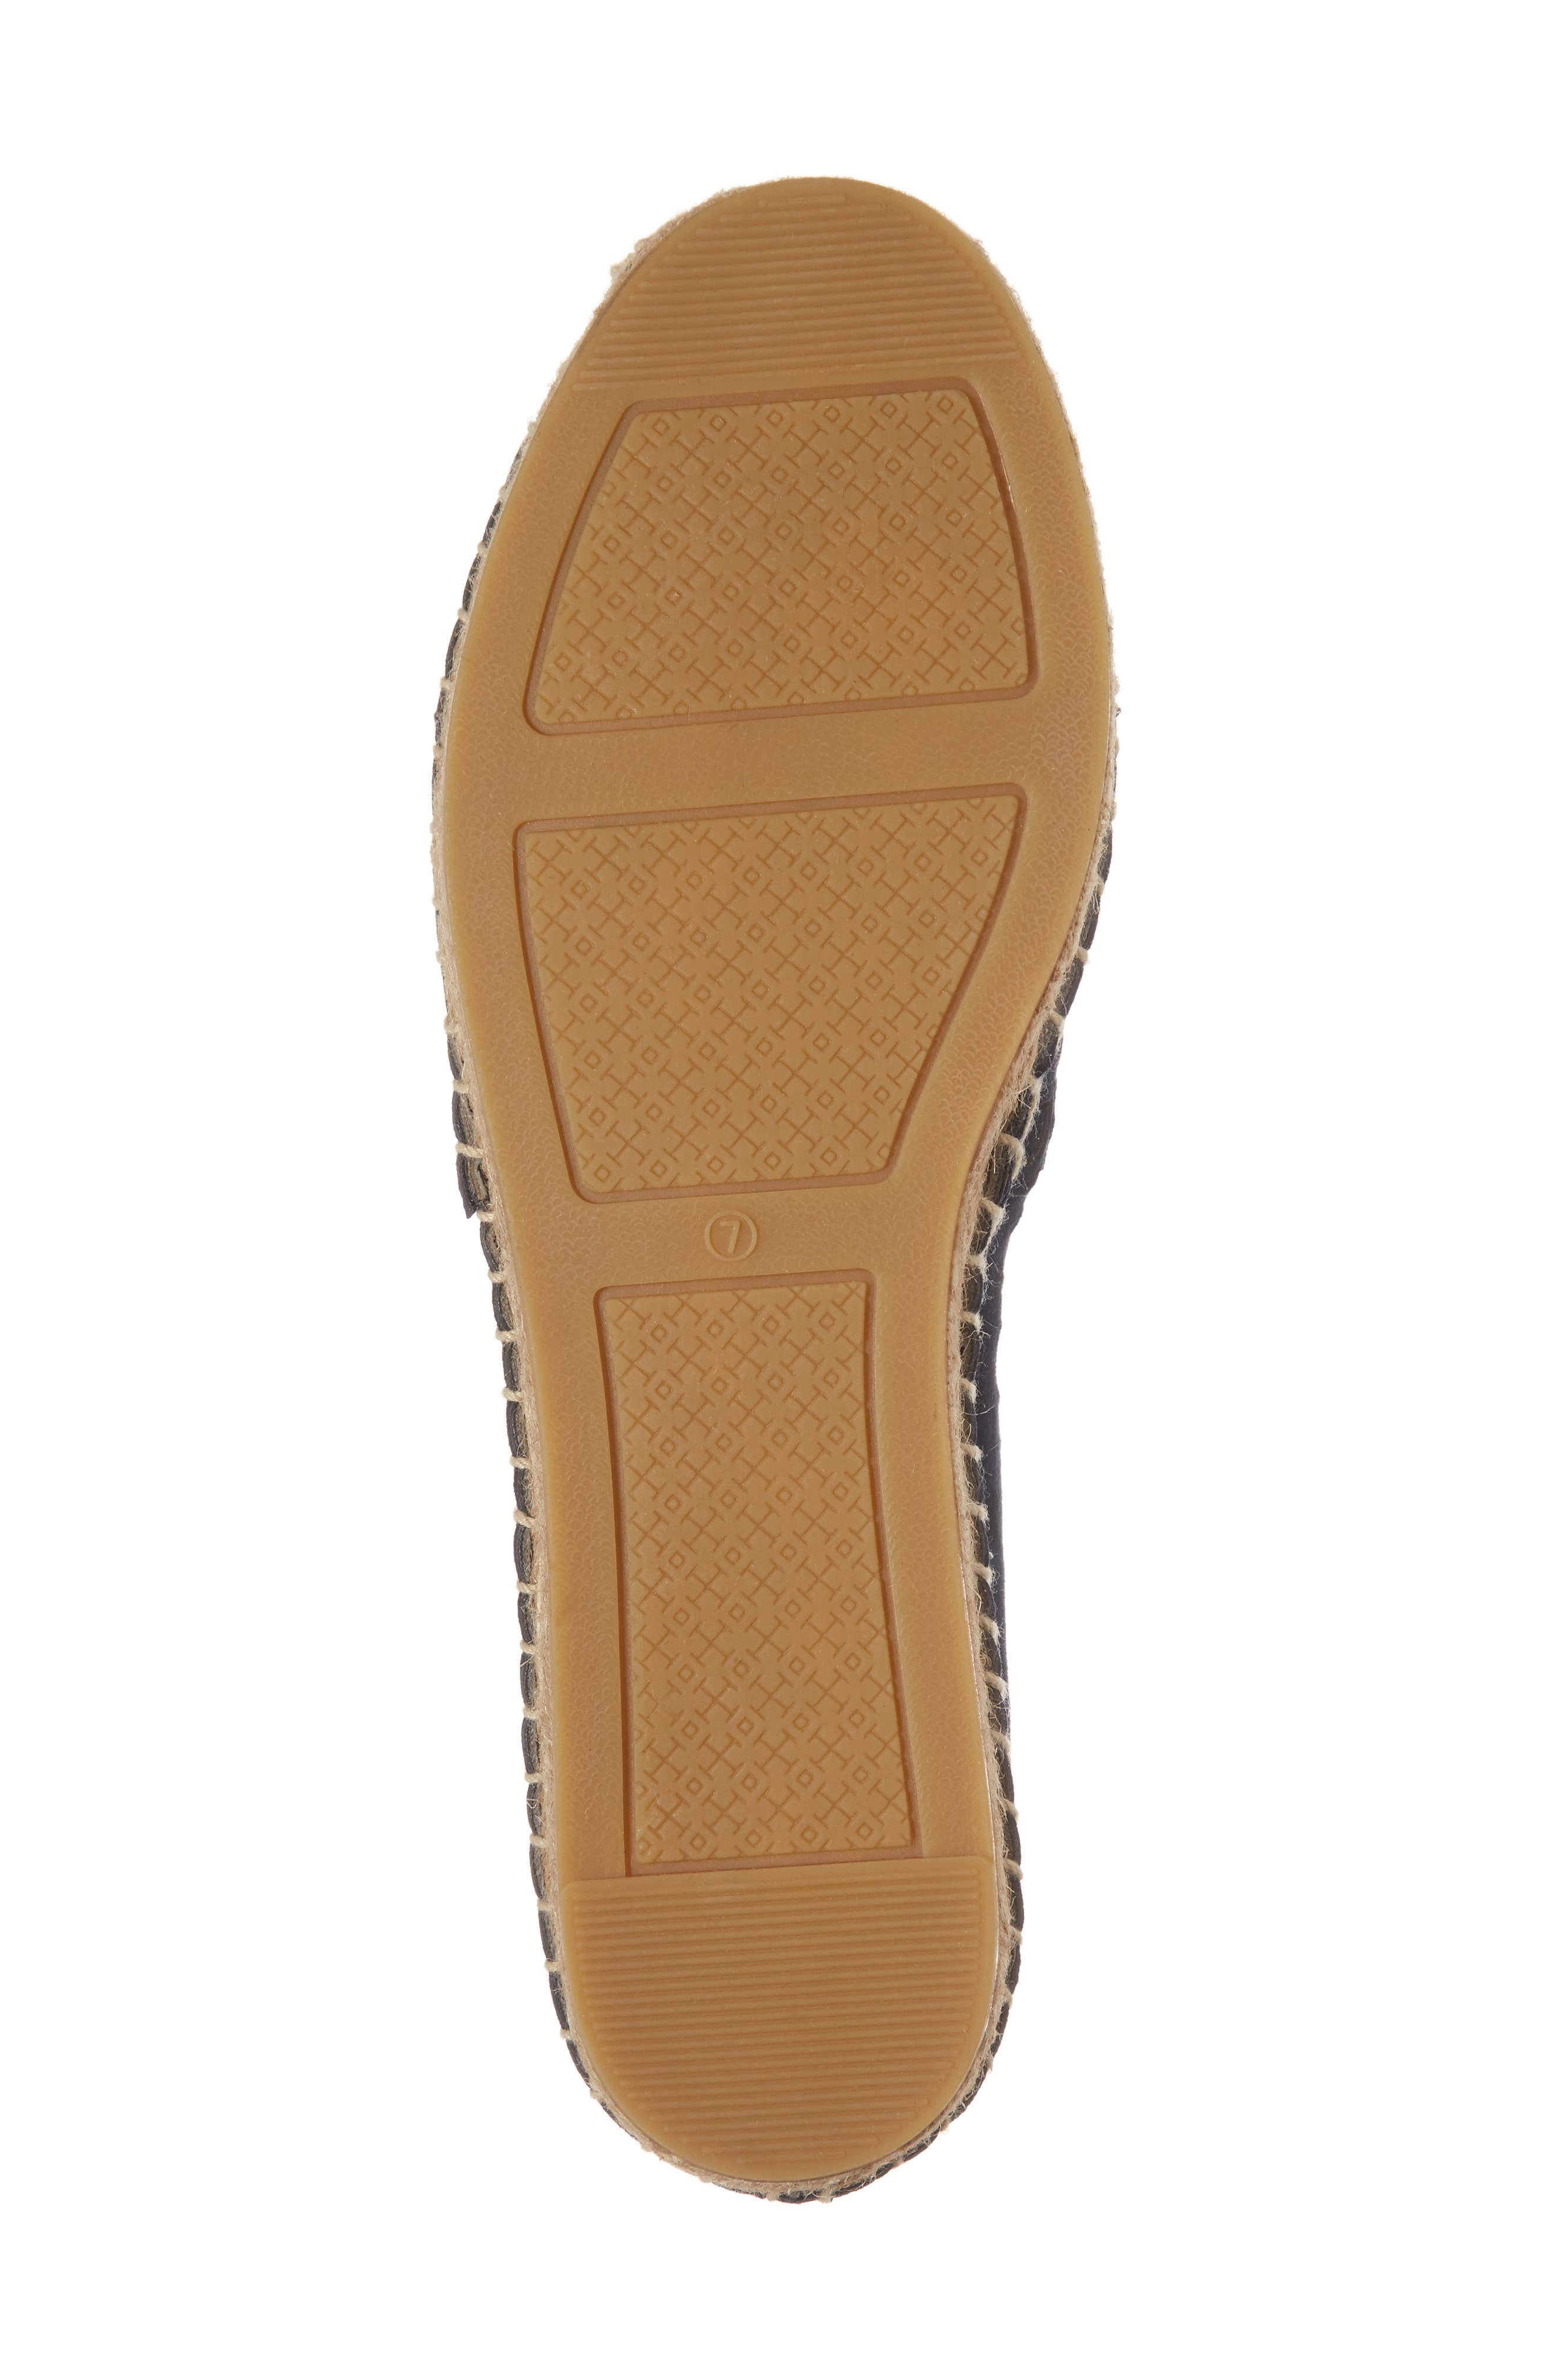 May Perforated Espadrille Flat,                             Alternate thumbnail 6, color,                             430